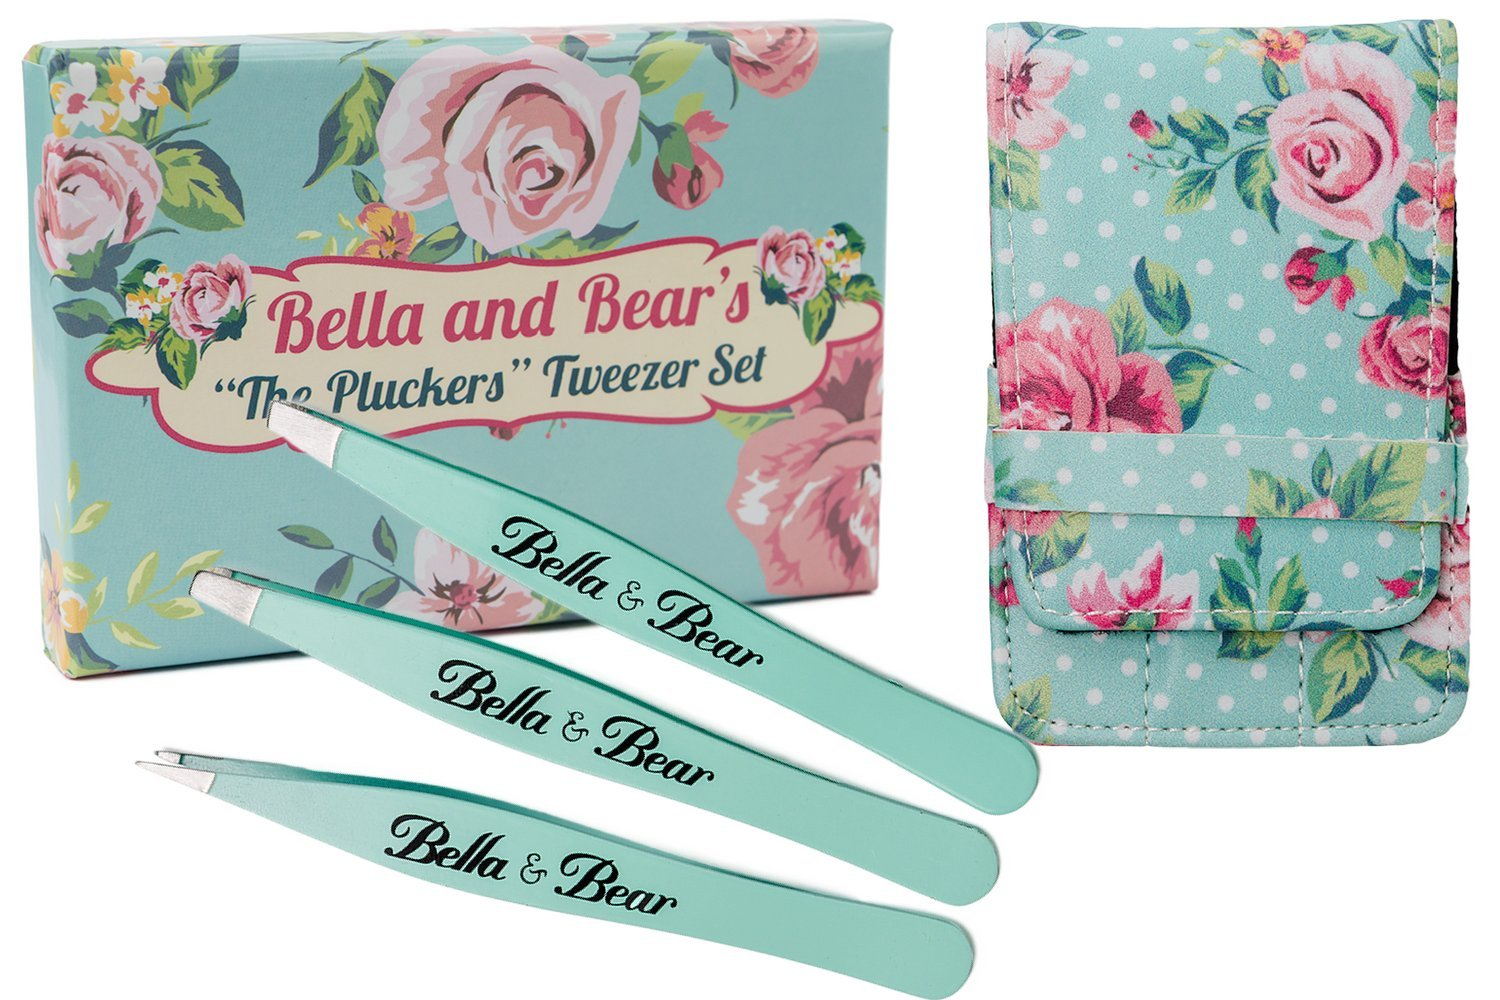 Eyebrow Tweezers by Bella and Bear - The Tweezers Set for Professional Shaping